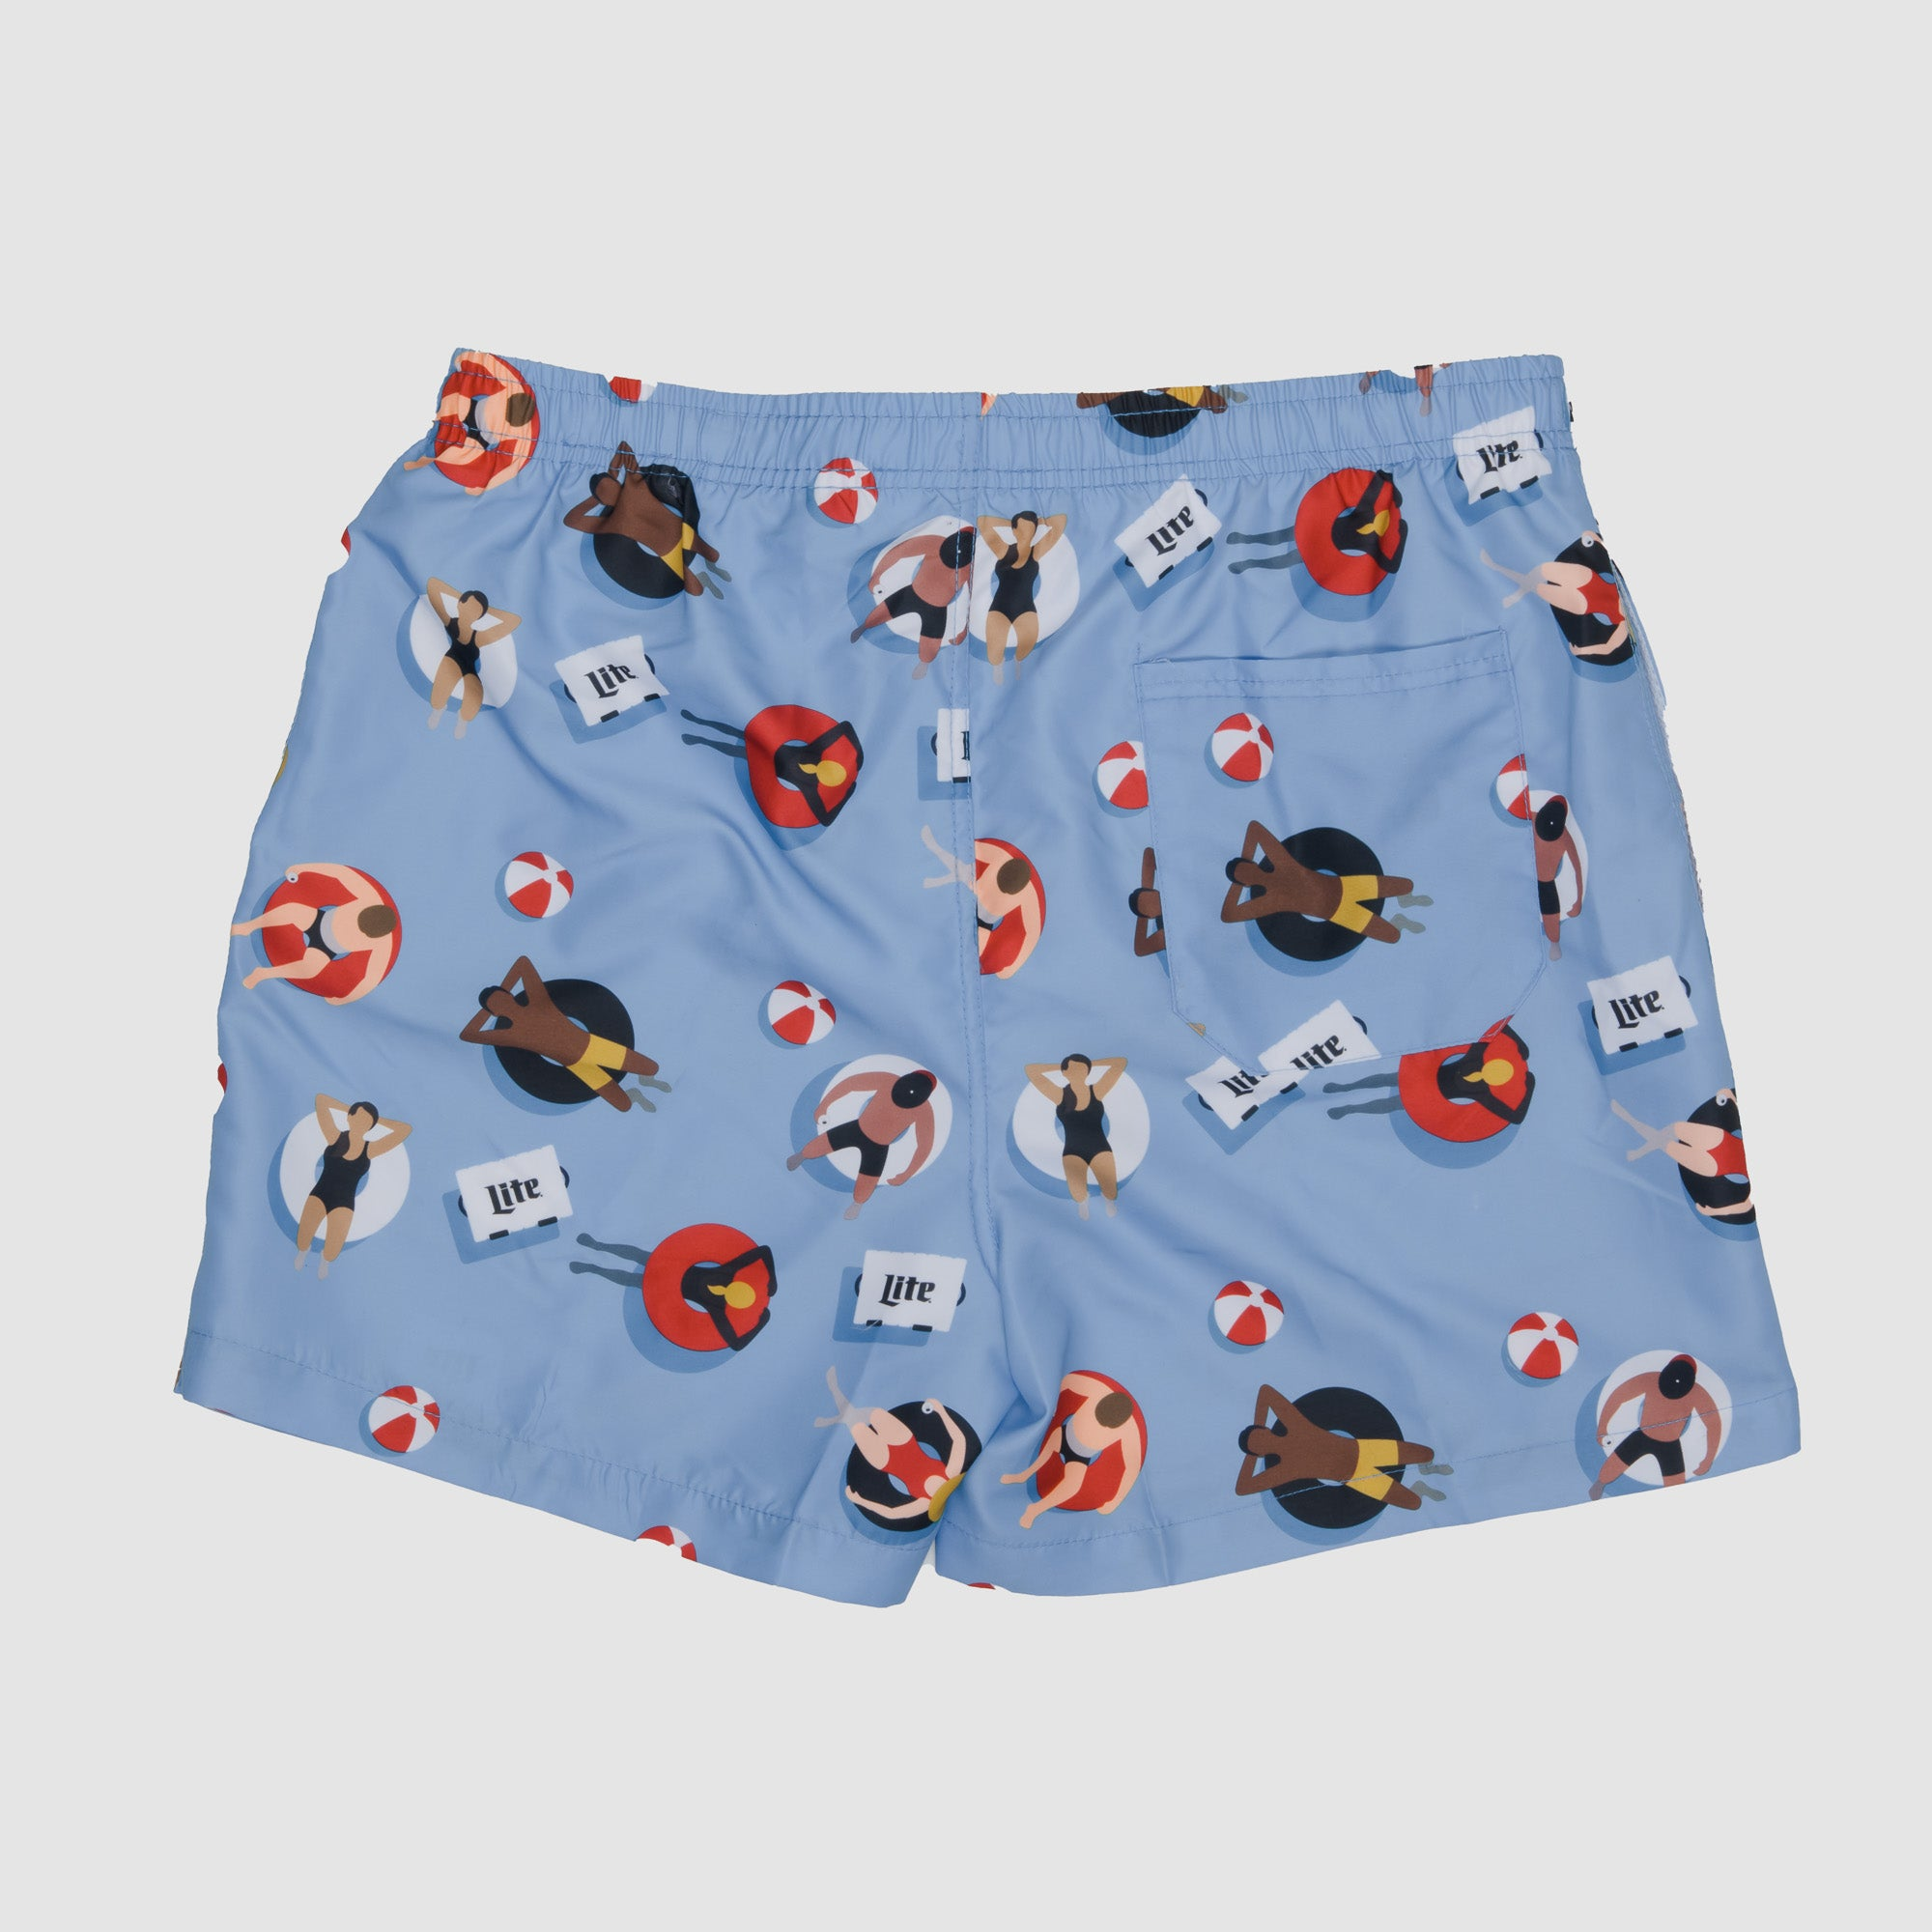 SUMMER PRINT SWIM TRUNKS